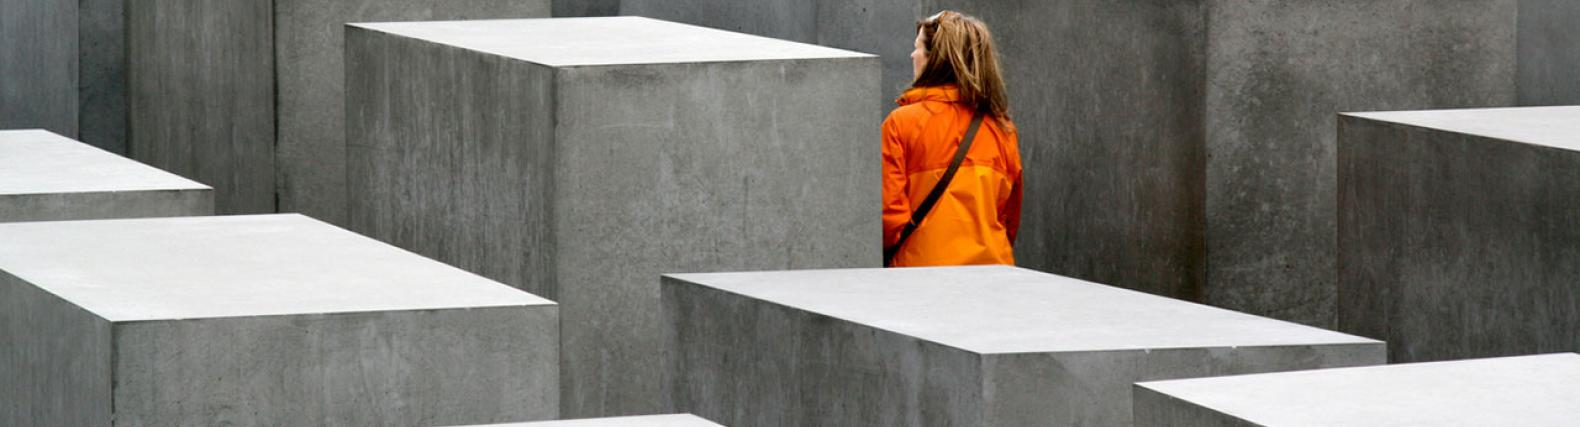 image of woman walking through holocaust memorial